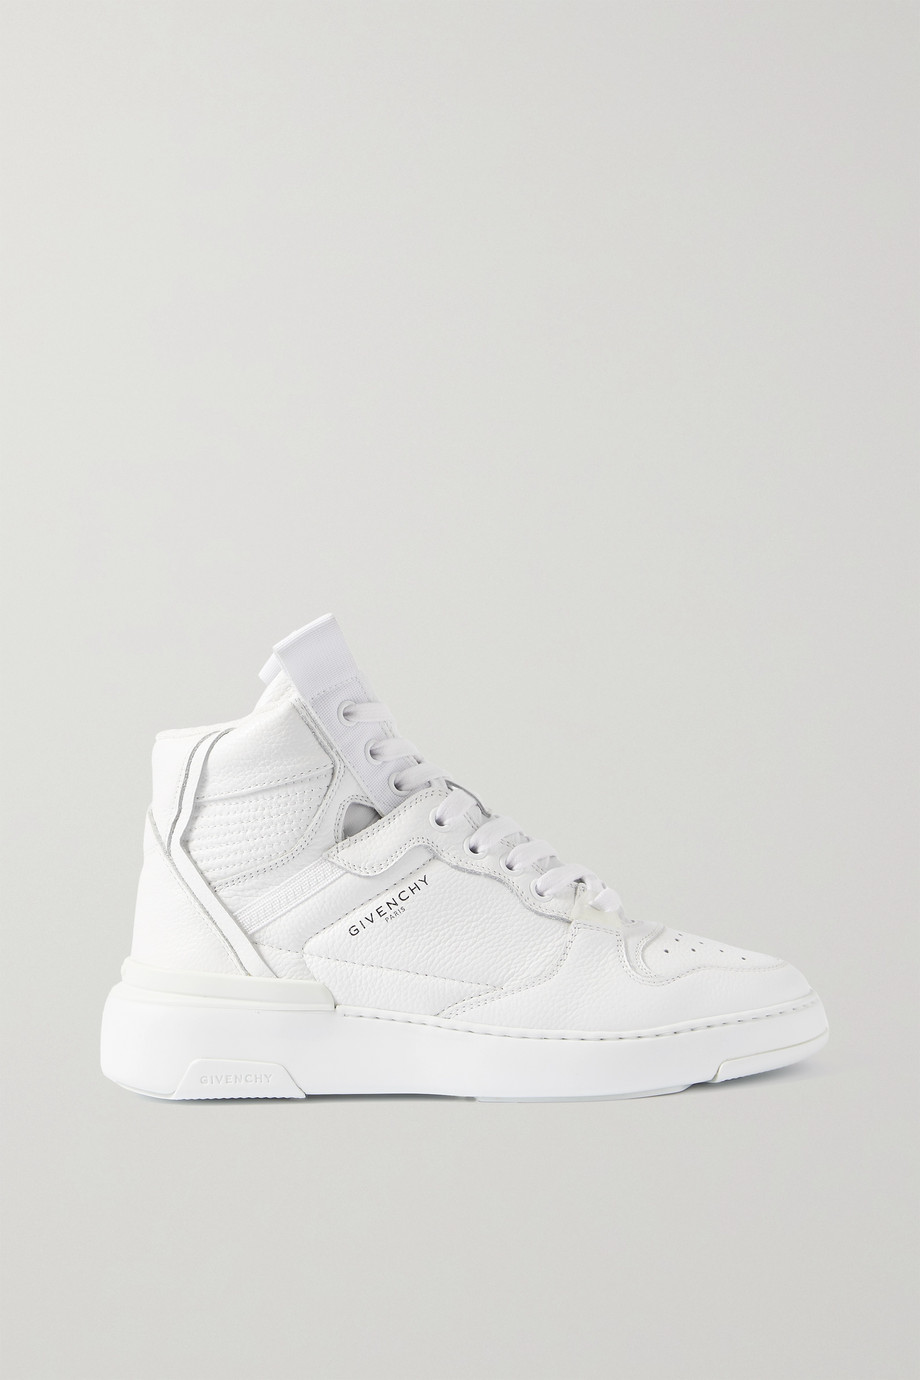 Givenchy Wing perforated leather high-top sneakers